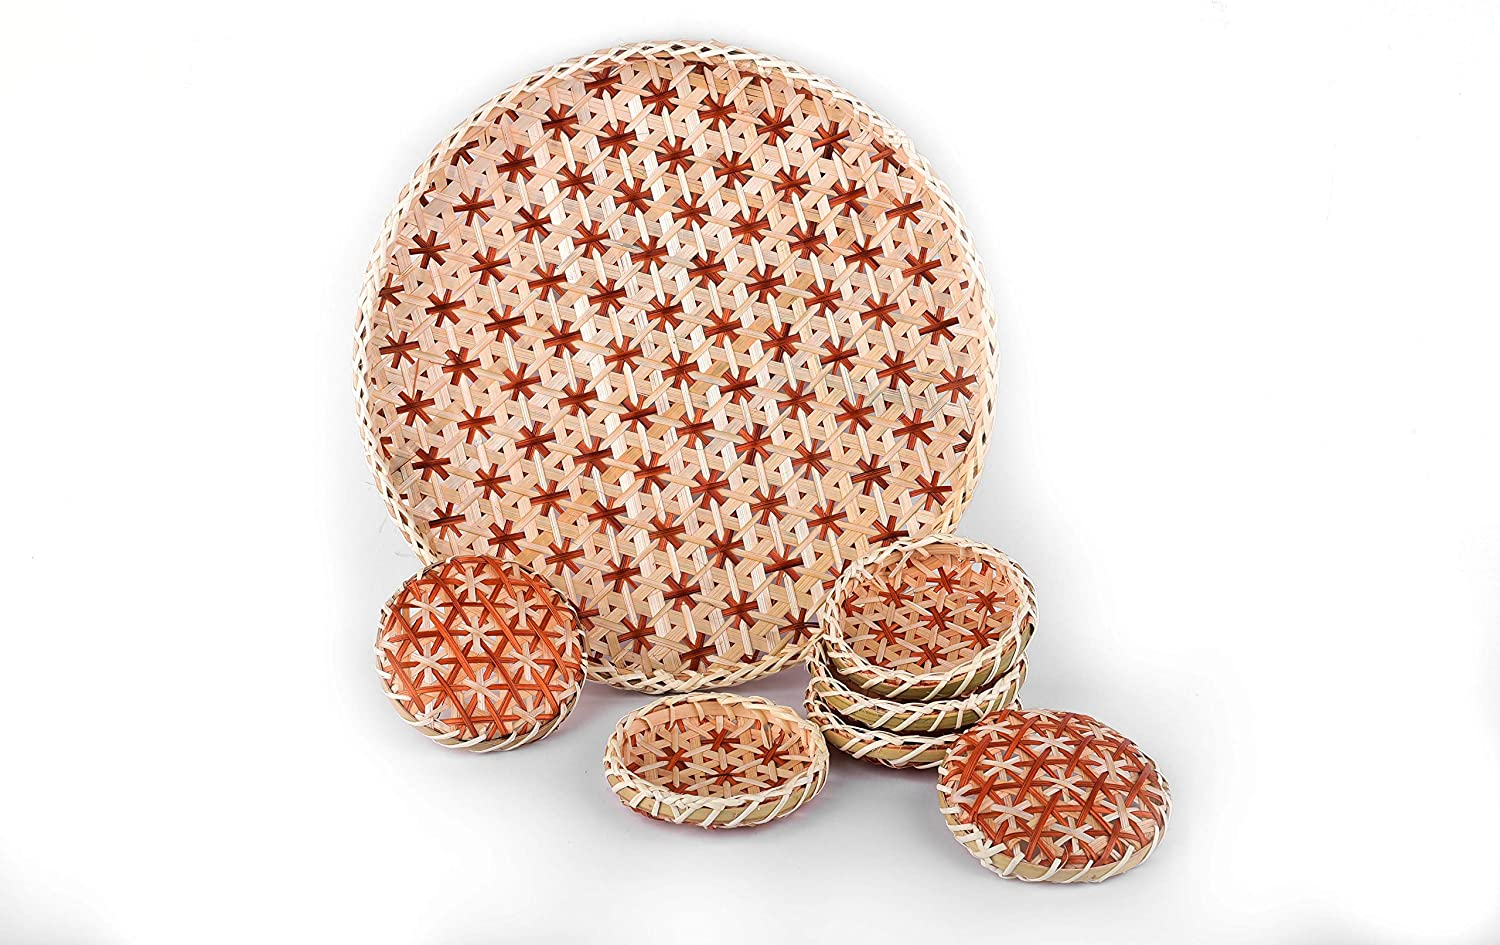 TV BAMBOO Bamboo Tray in Round, Honey Brown   Handmade Decorative Trays for Home Decor   Boho Wall Art for Living Room   Bamboo Trays for Food   Woven Basket Wall Decor, 1 Large 12.6